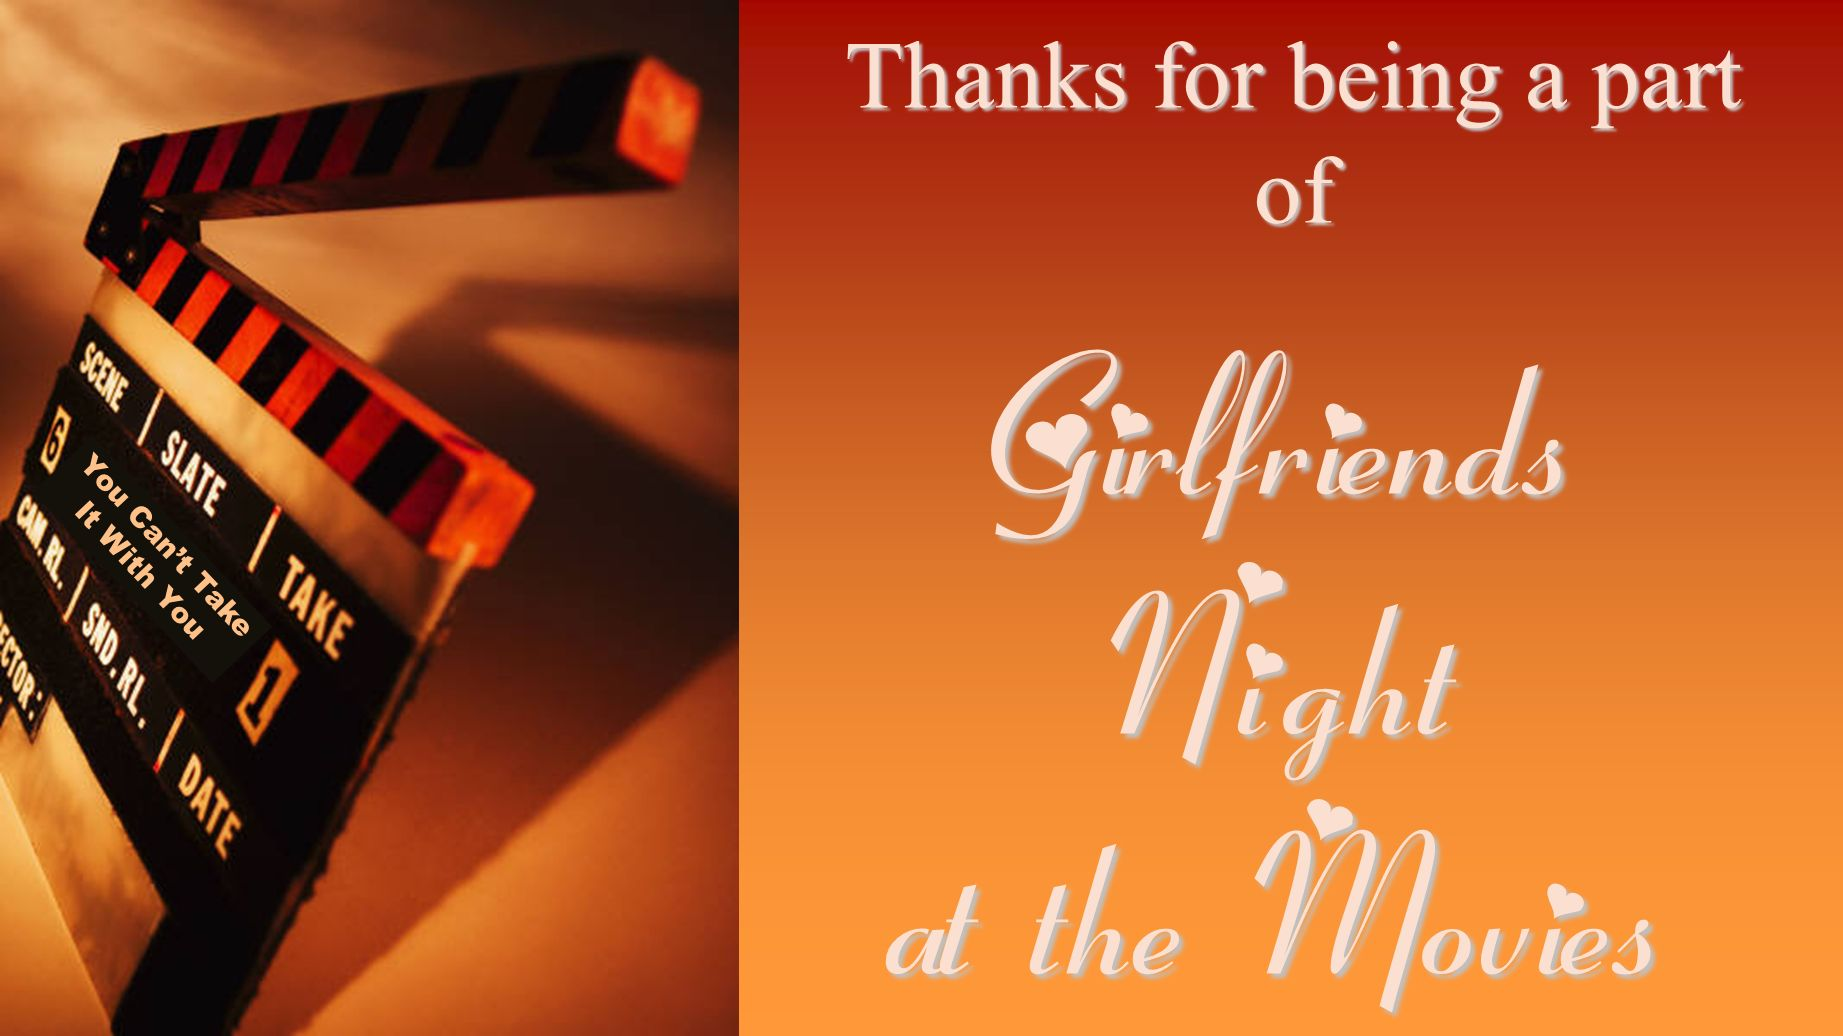 You Cant Take It With You Thanks for being a part of Girlfriends Night at the Movies